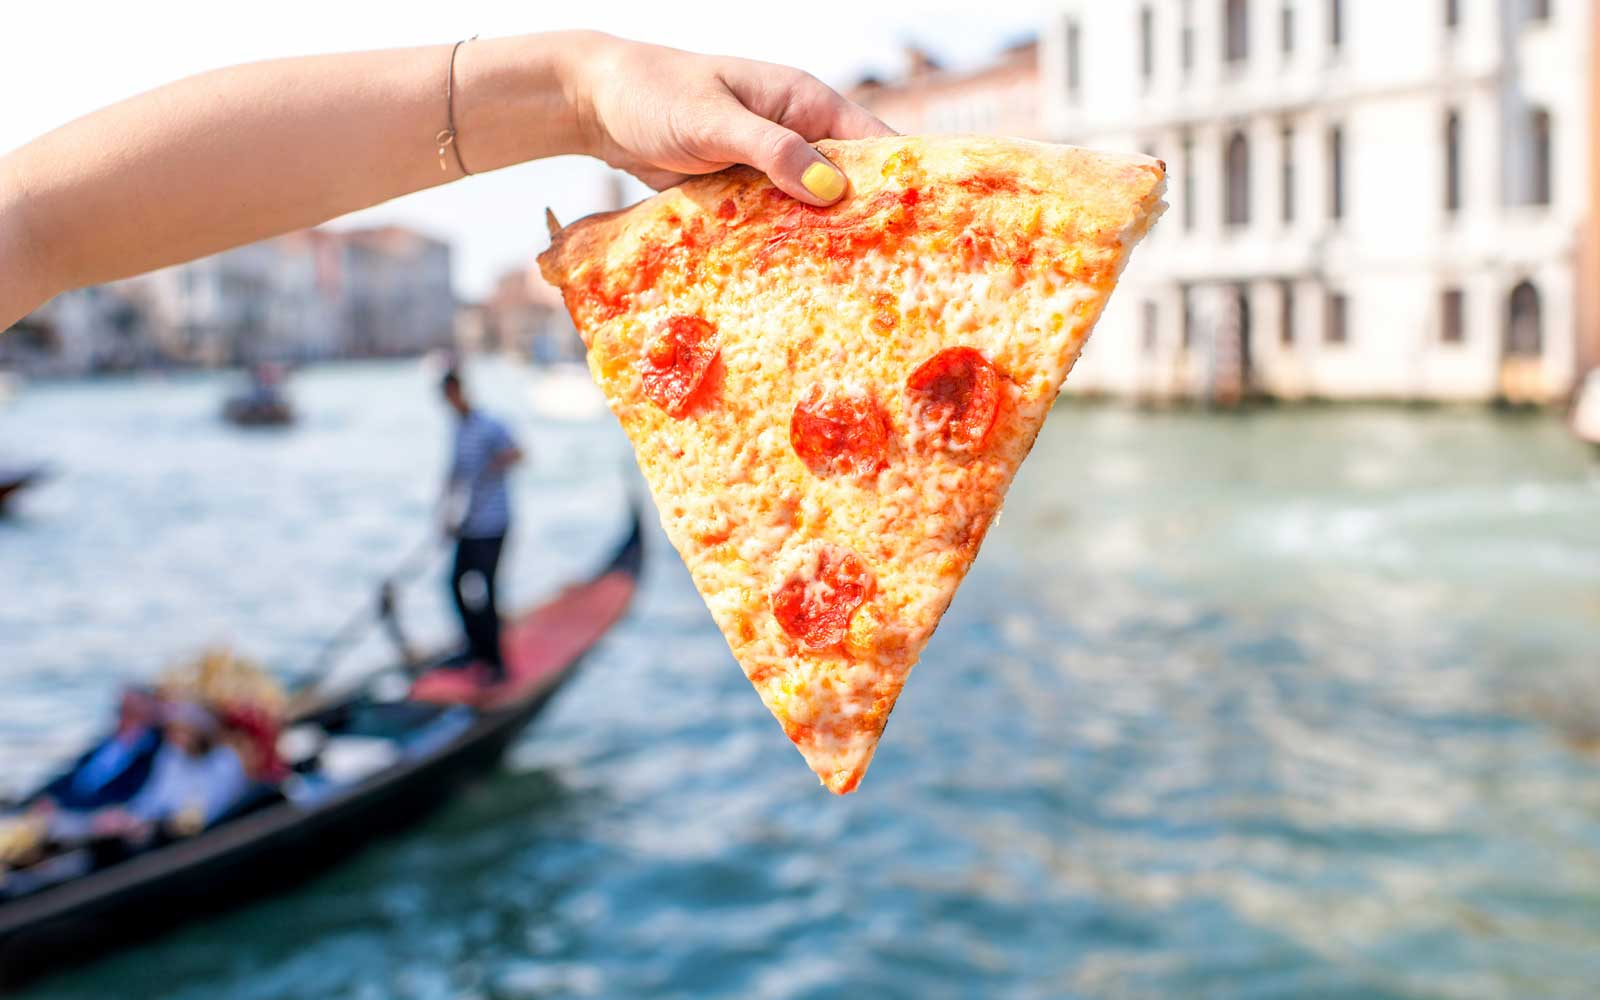 It's about to get a lot harder to get a slice of pizza in Venice